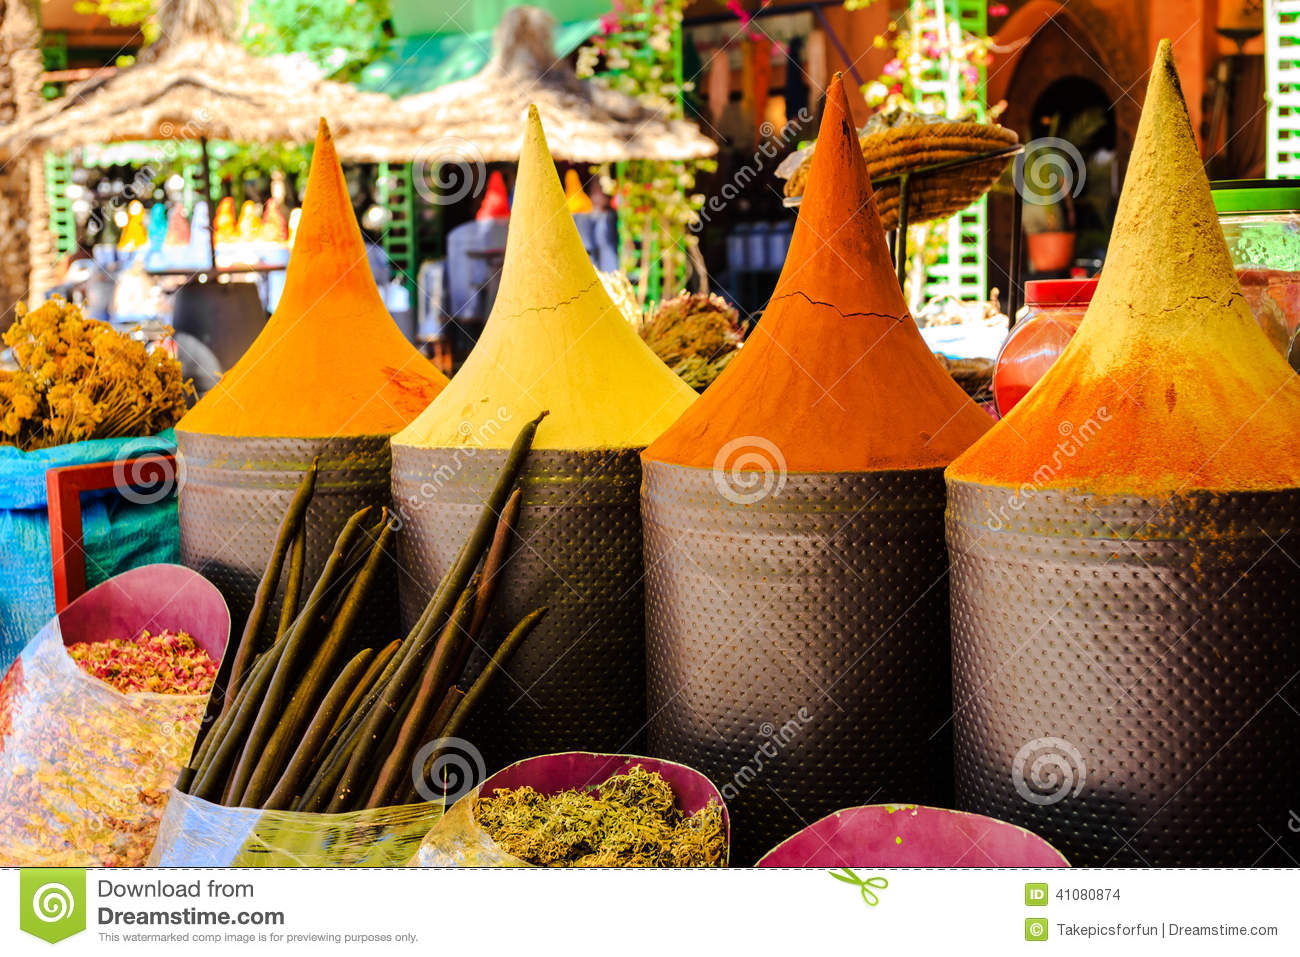 moroccan spice stall stock photo - image: 41080874